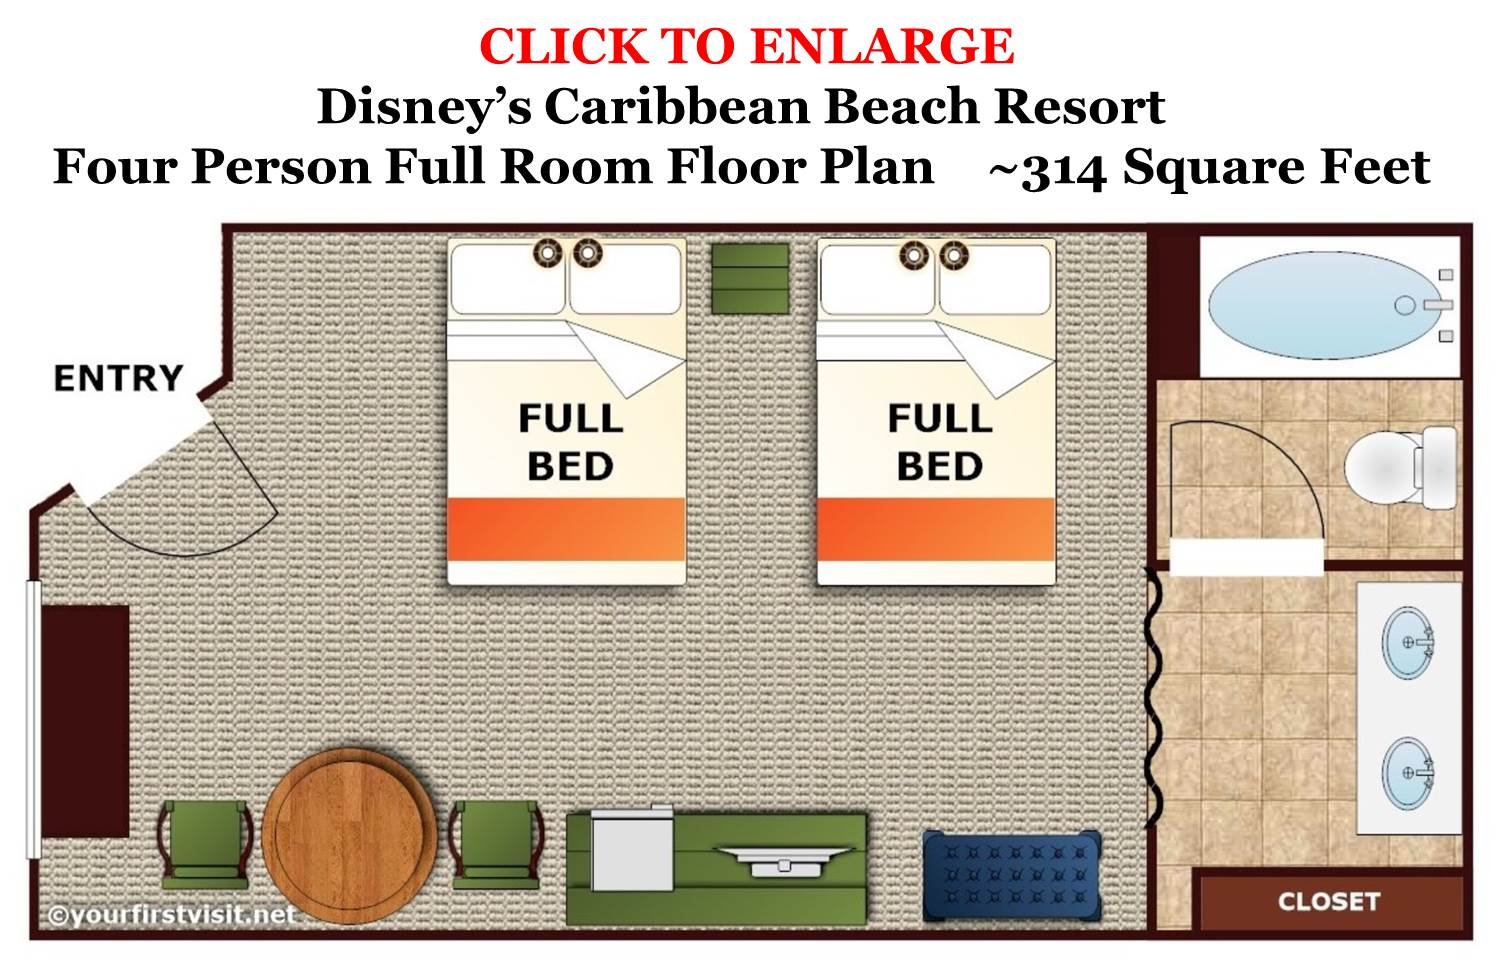 Four Person Full Room Floor Plan Disney's Caribbean Beach Resort from yourfirstvisit.net